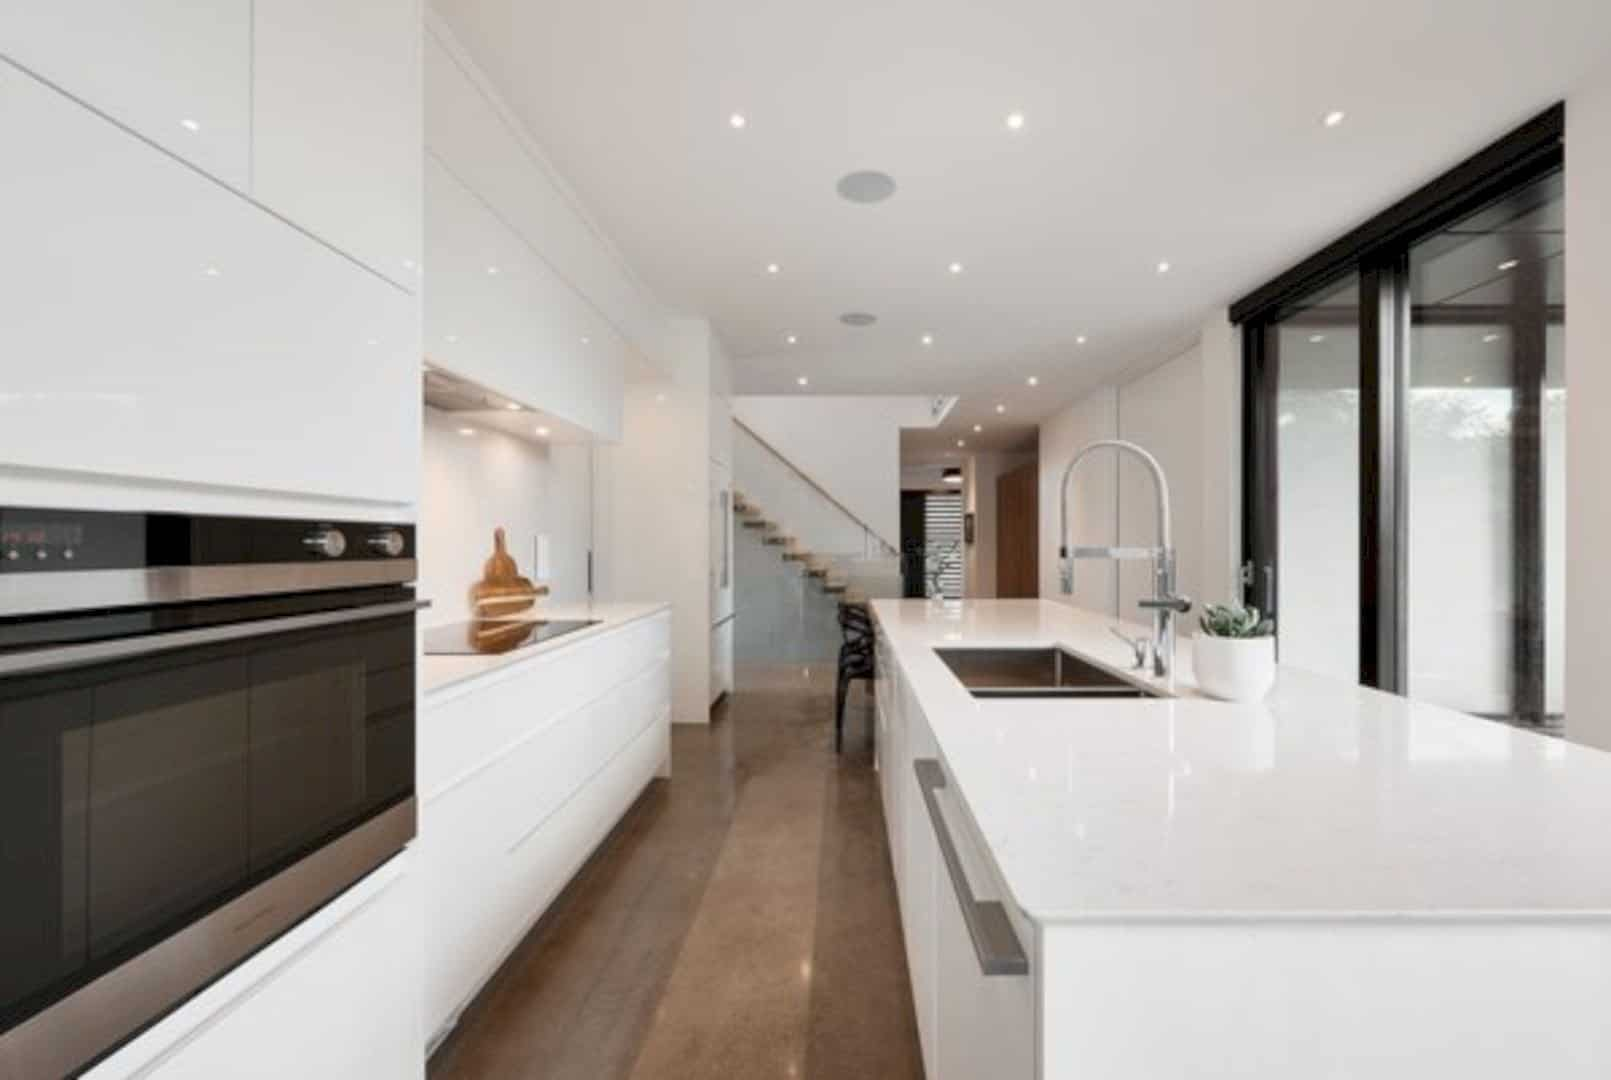 Oak Residence A Modern And Minimalist Home With Natural Materials 5